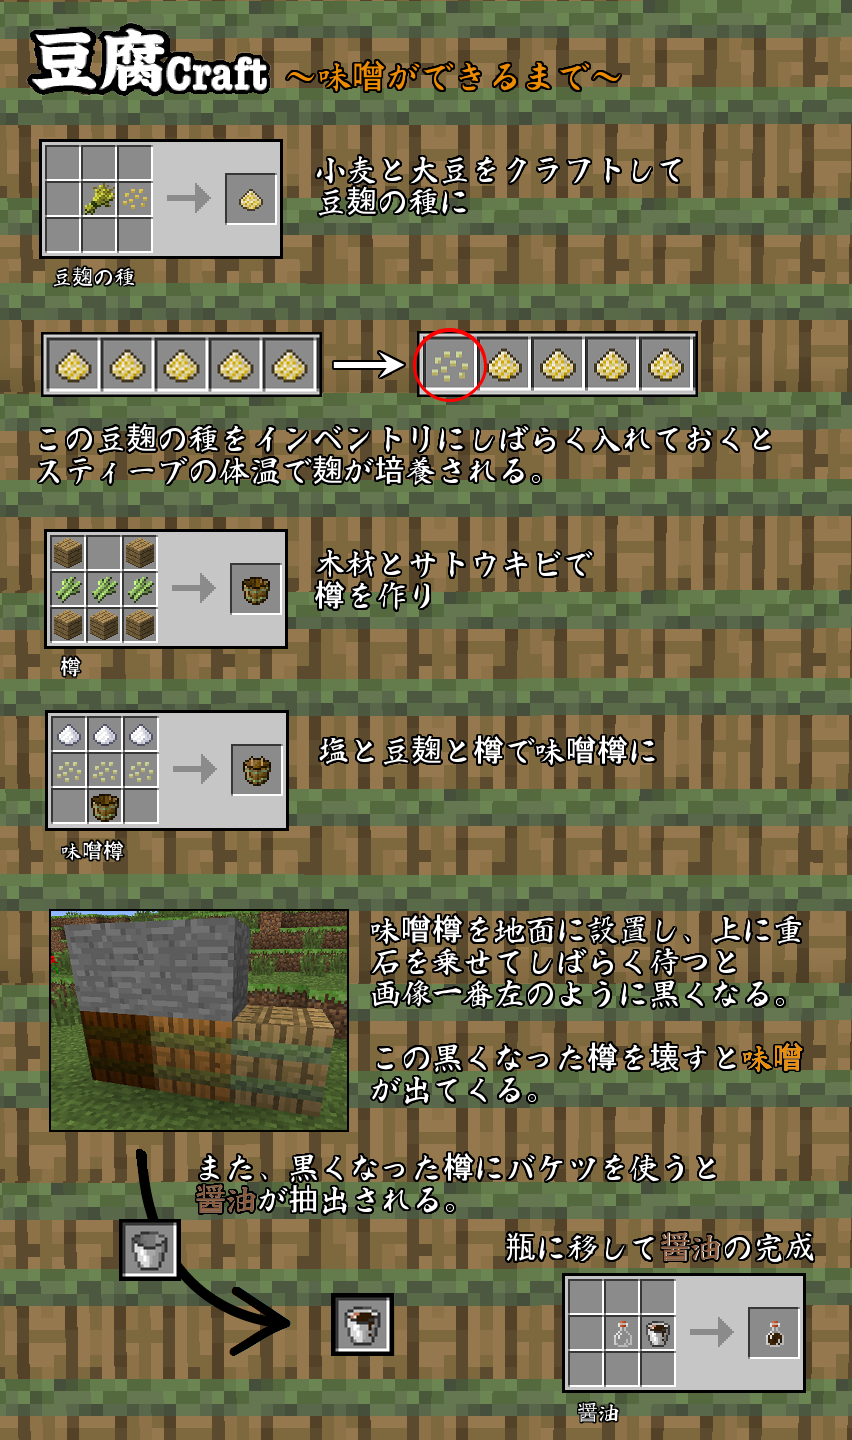 tofucraft-3_20130310203453.png